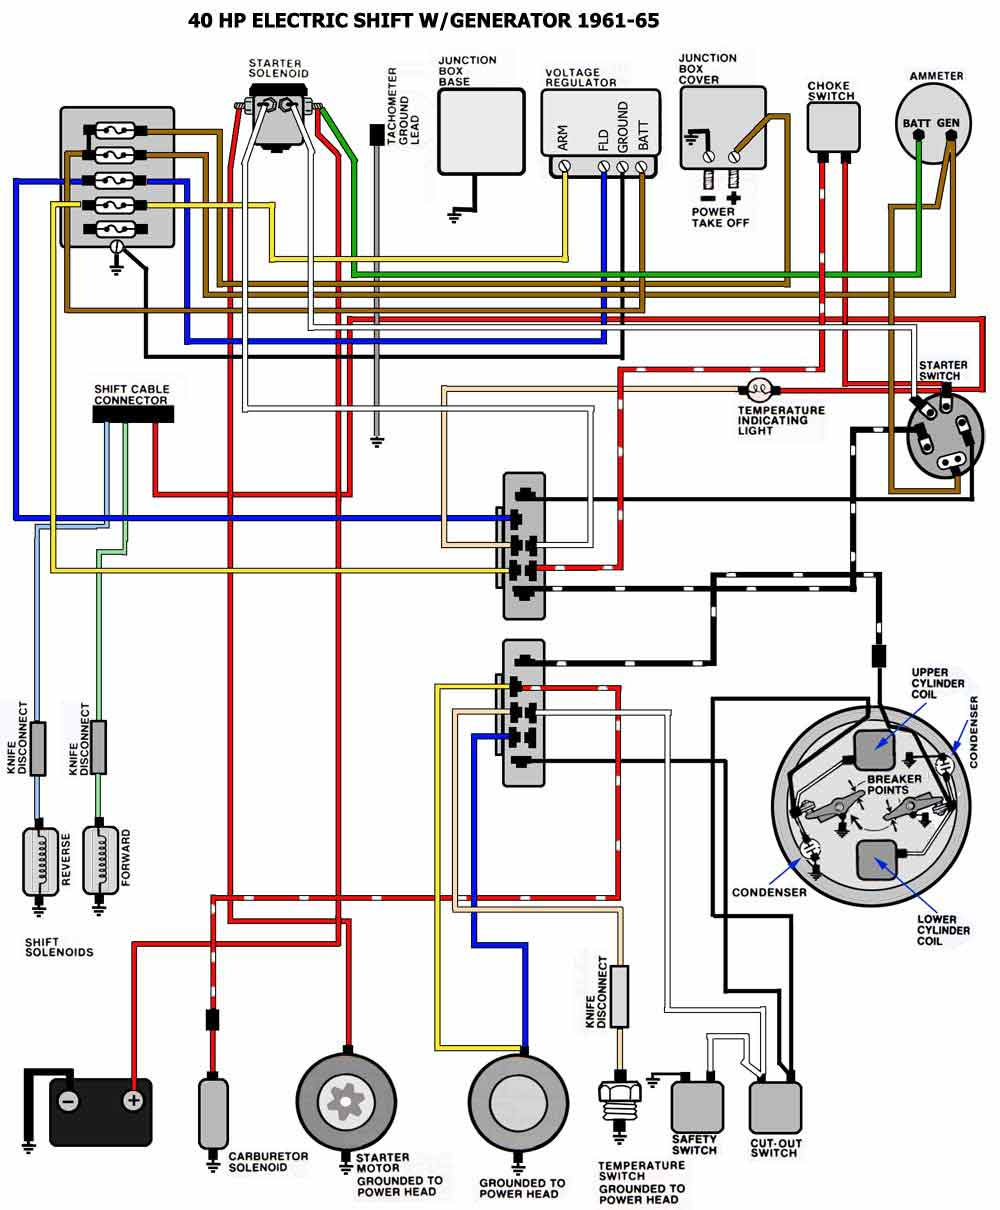 evinrude johnson outboard wiring diagrams mastertech marine husky 25 hp  wiring diagram 40 hp electric shift